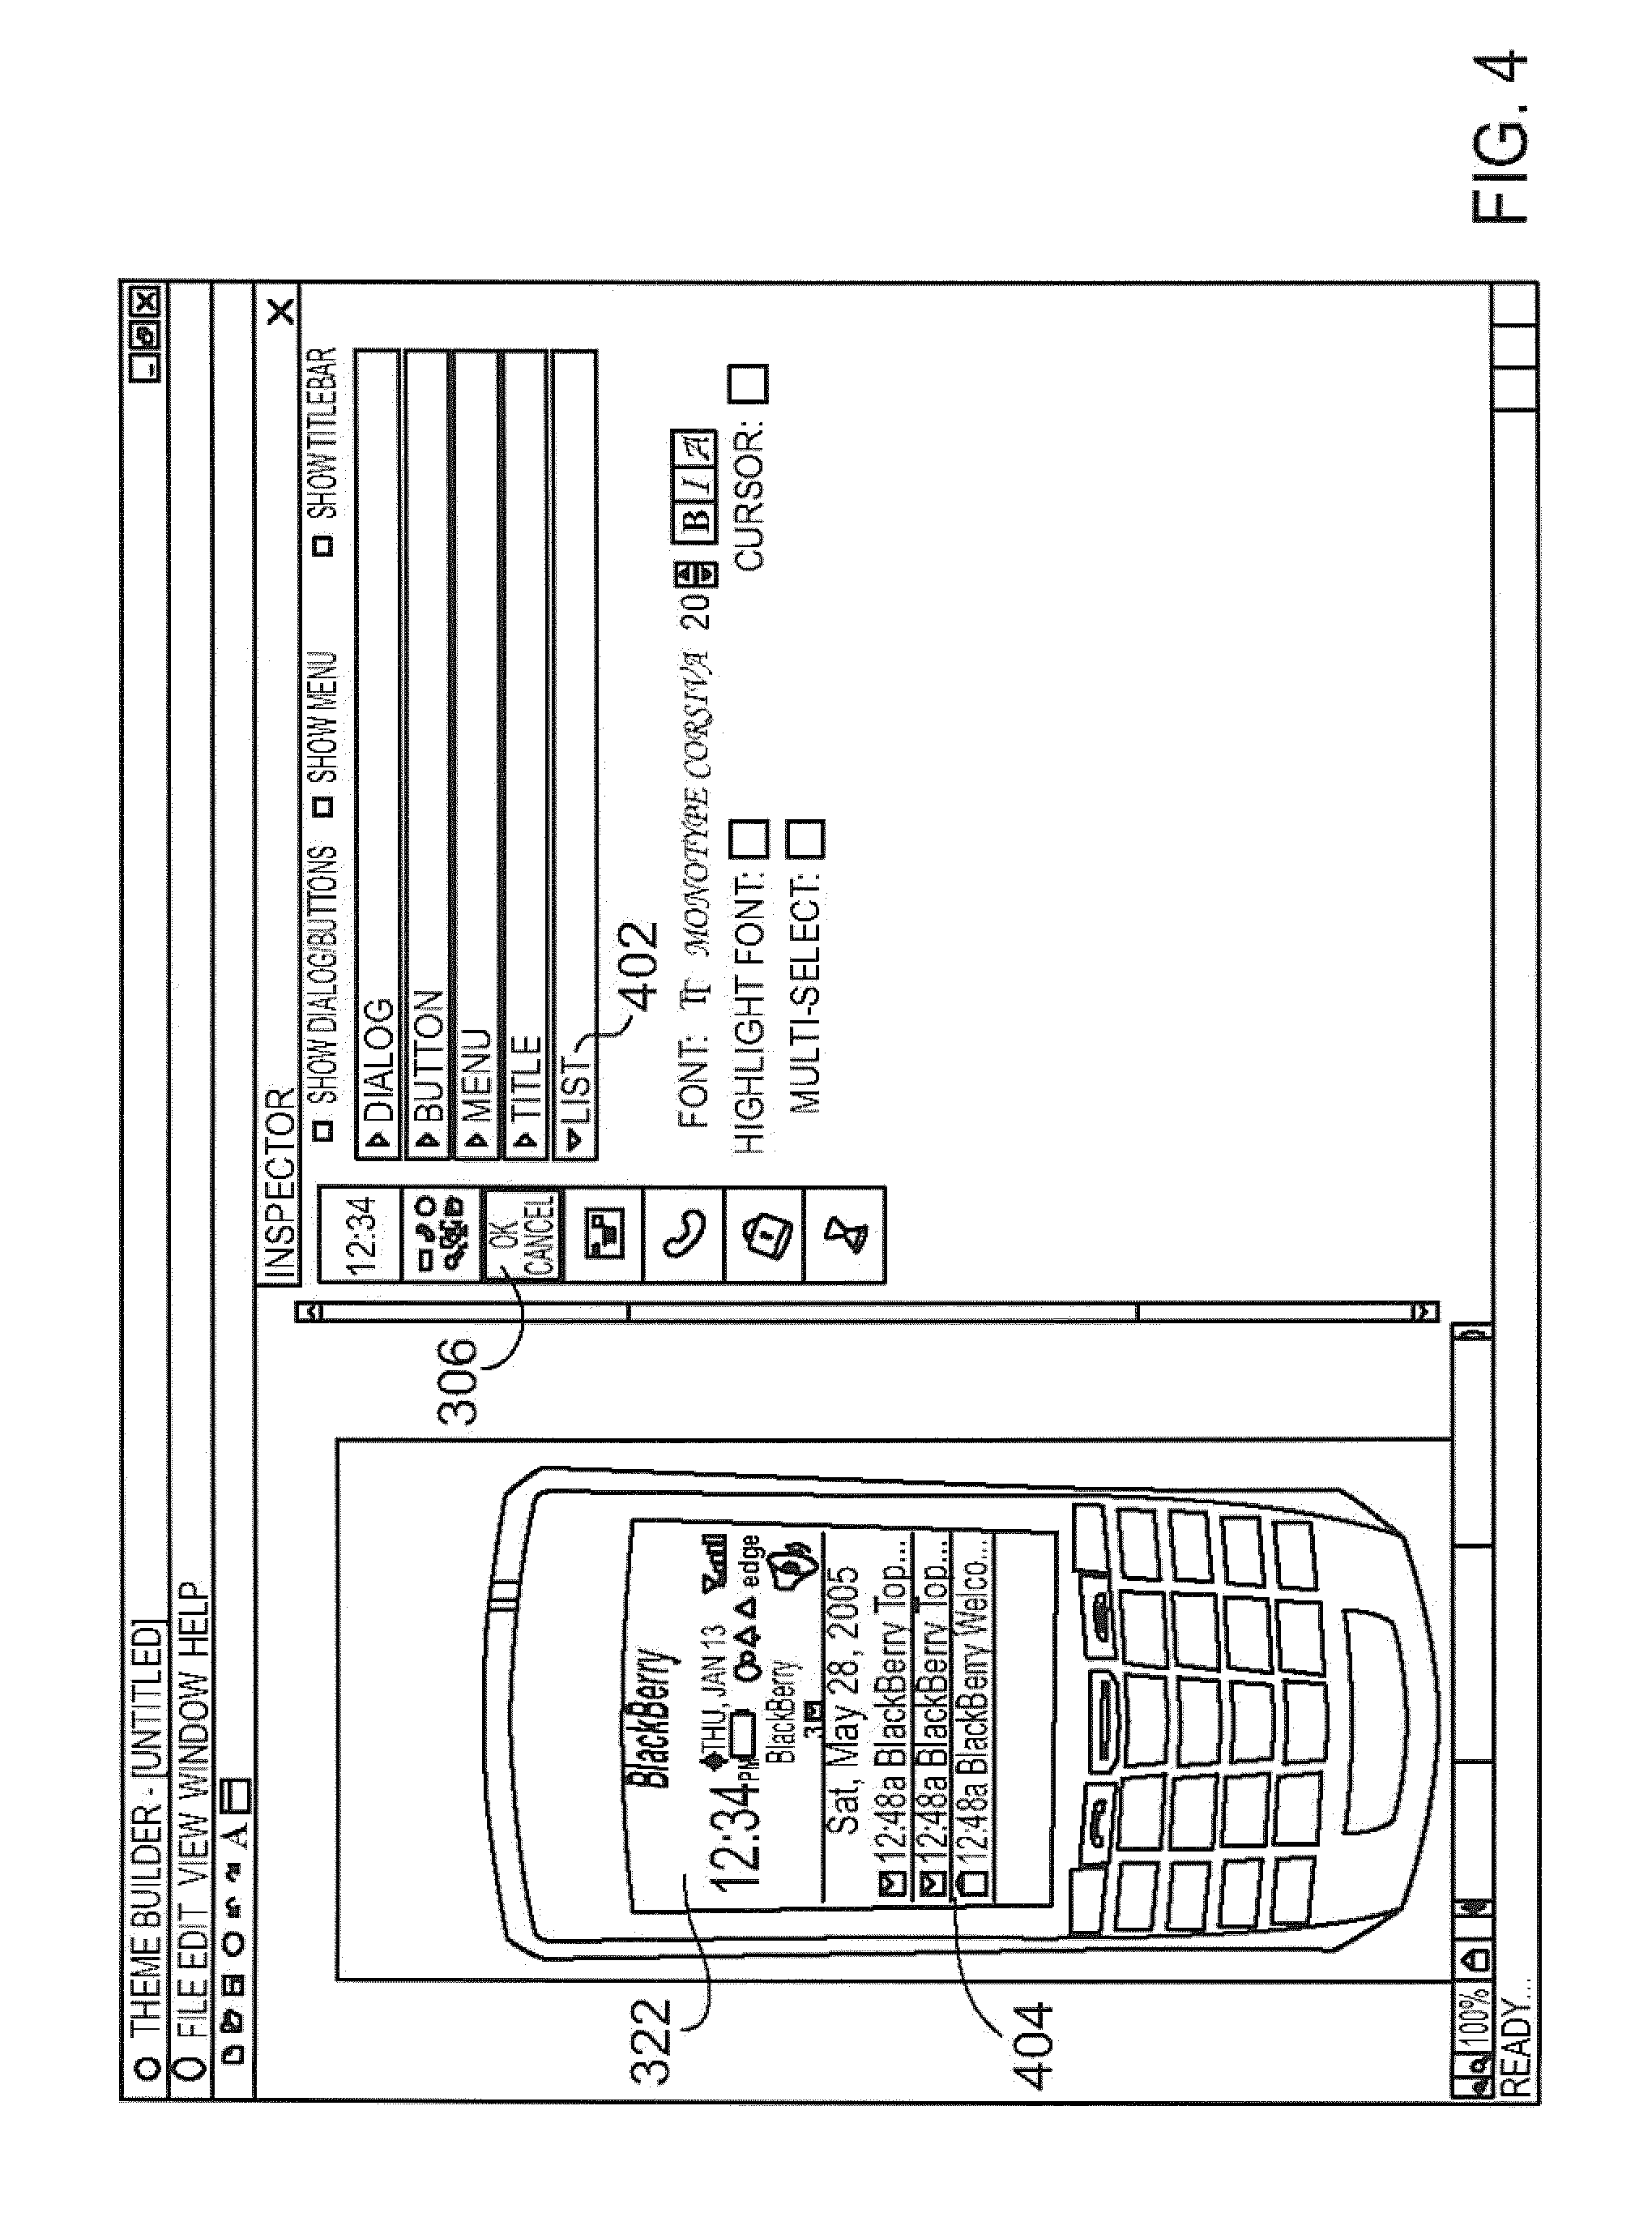 Google themes blackberry